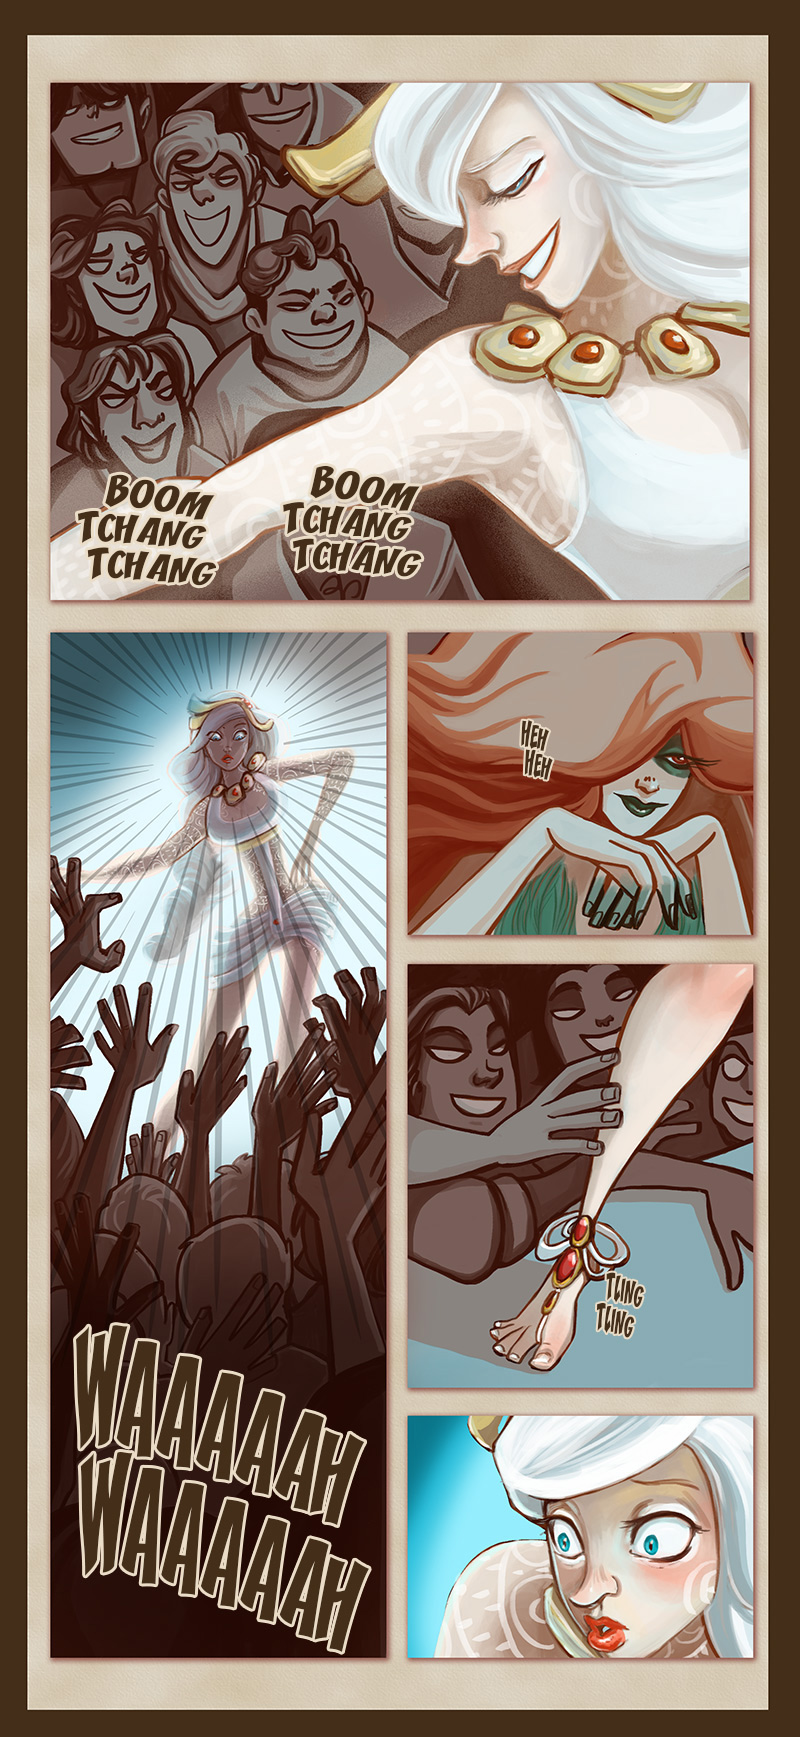 TGMS - Chapter 2 - Page 7